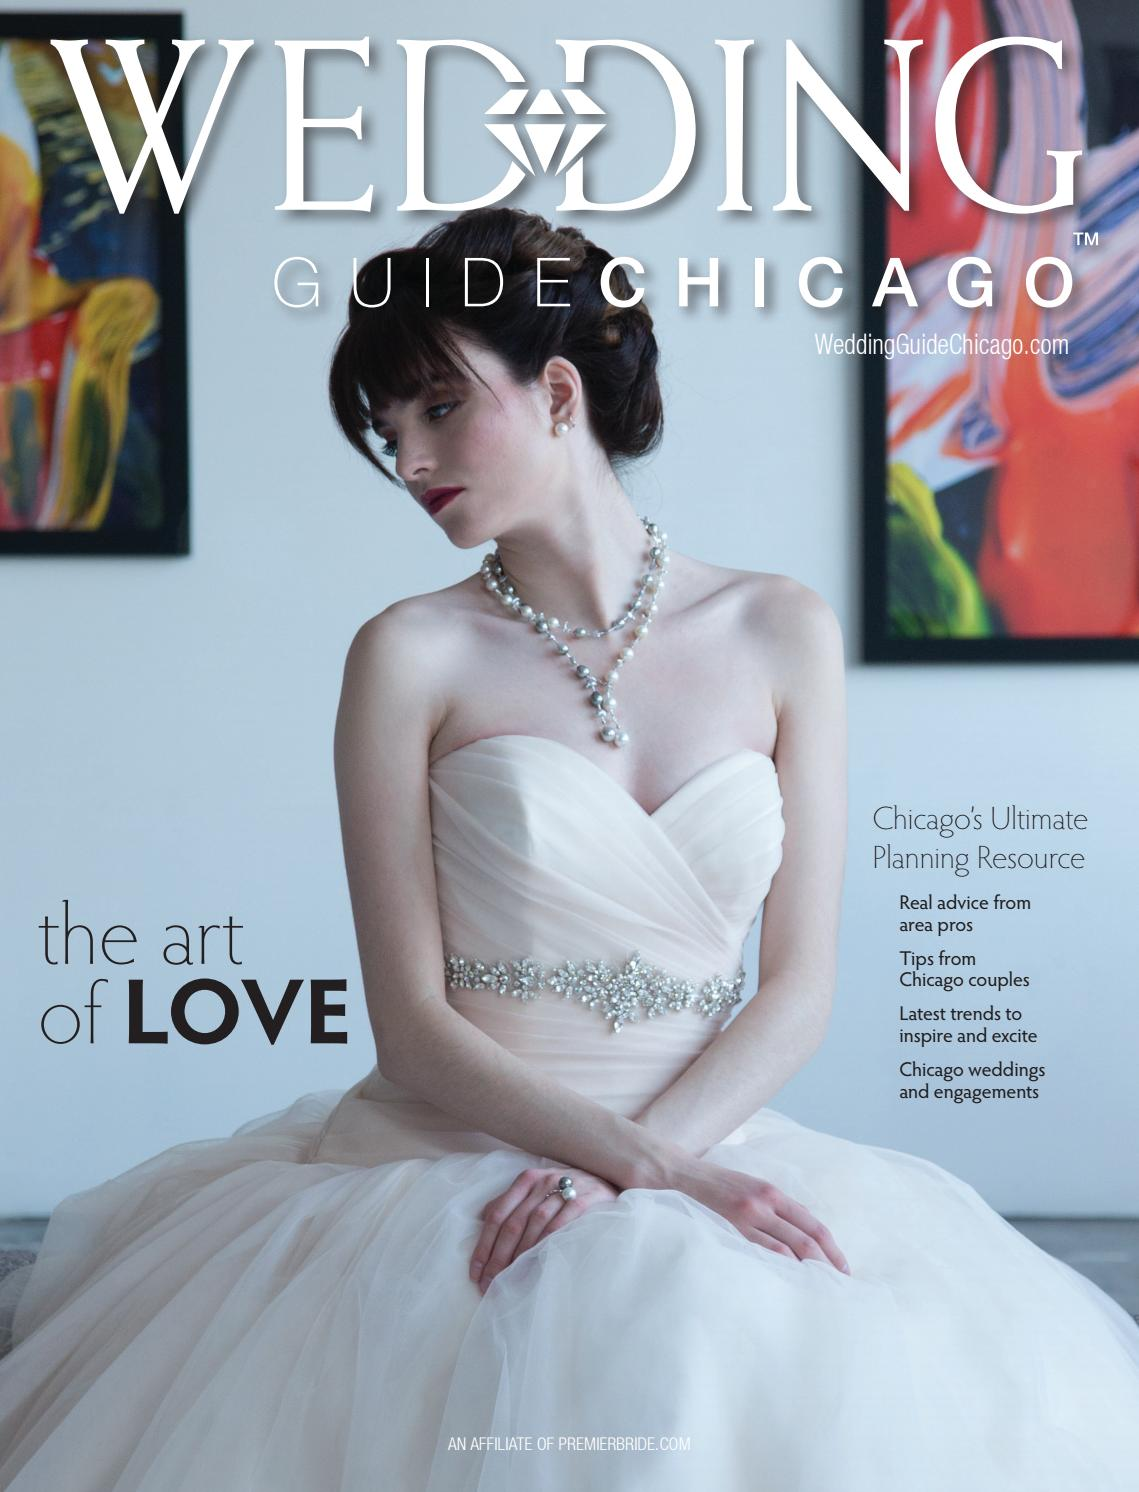 Wedding Guide Chicago Winter Spring 2017 By Wedding Guide Chicago